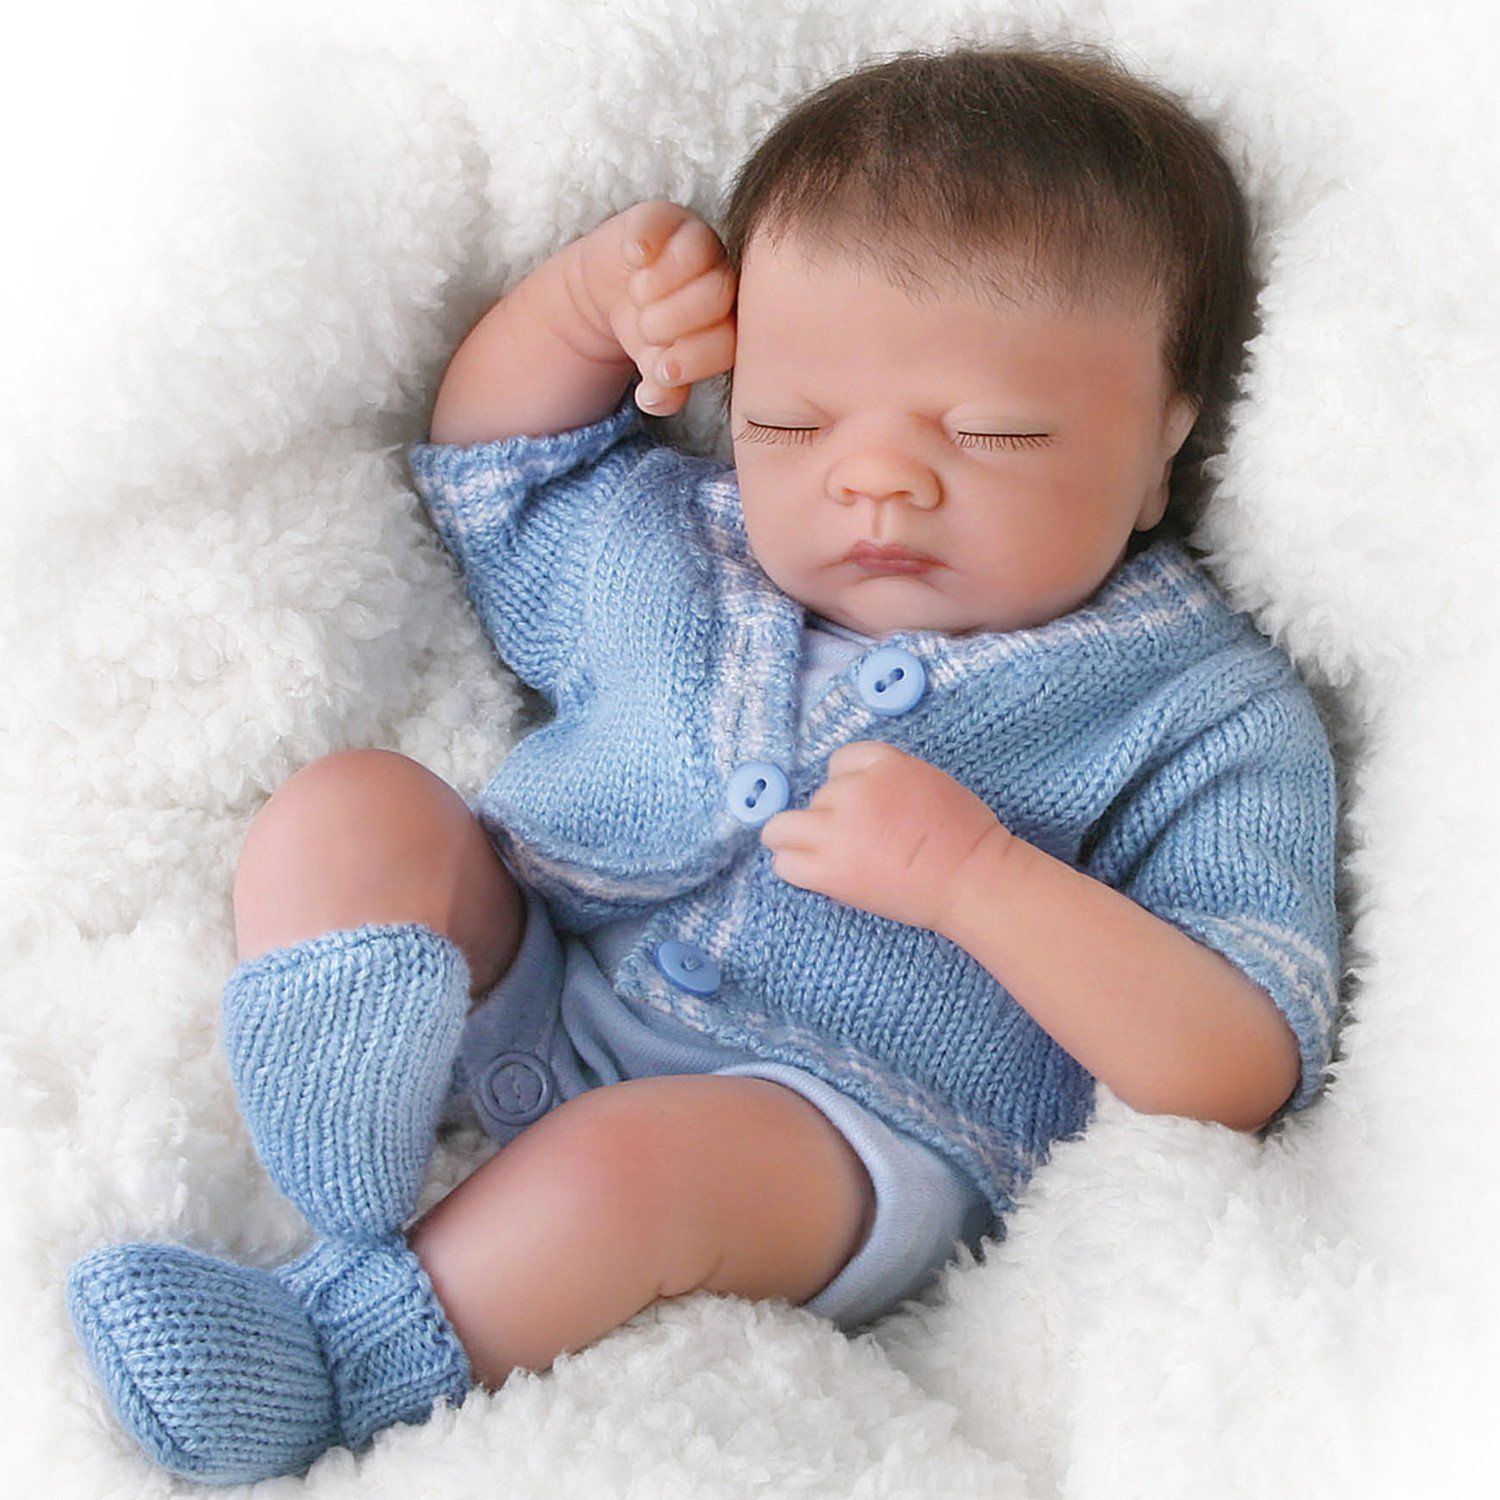 Realistic Baby Boy Doll Reborn Vinyl Hand Painted With